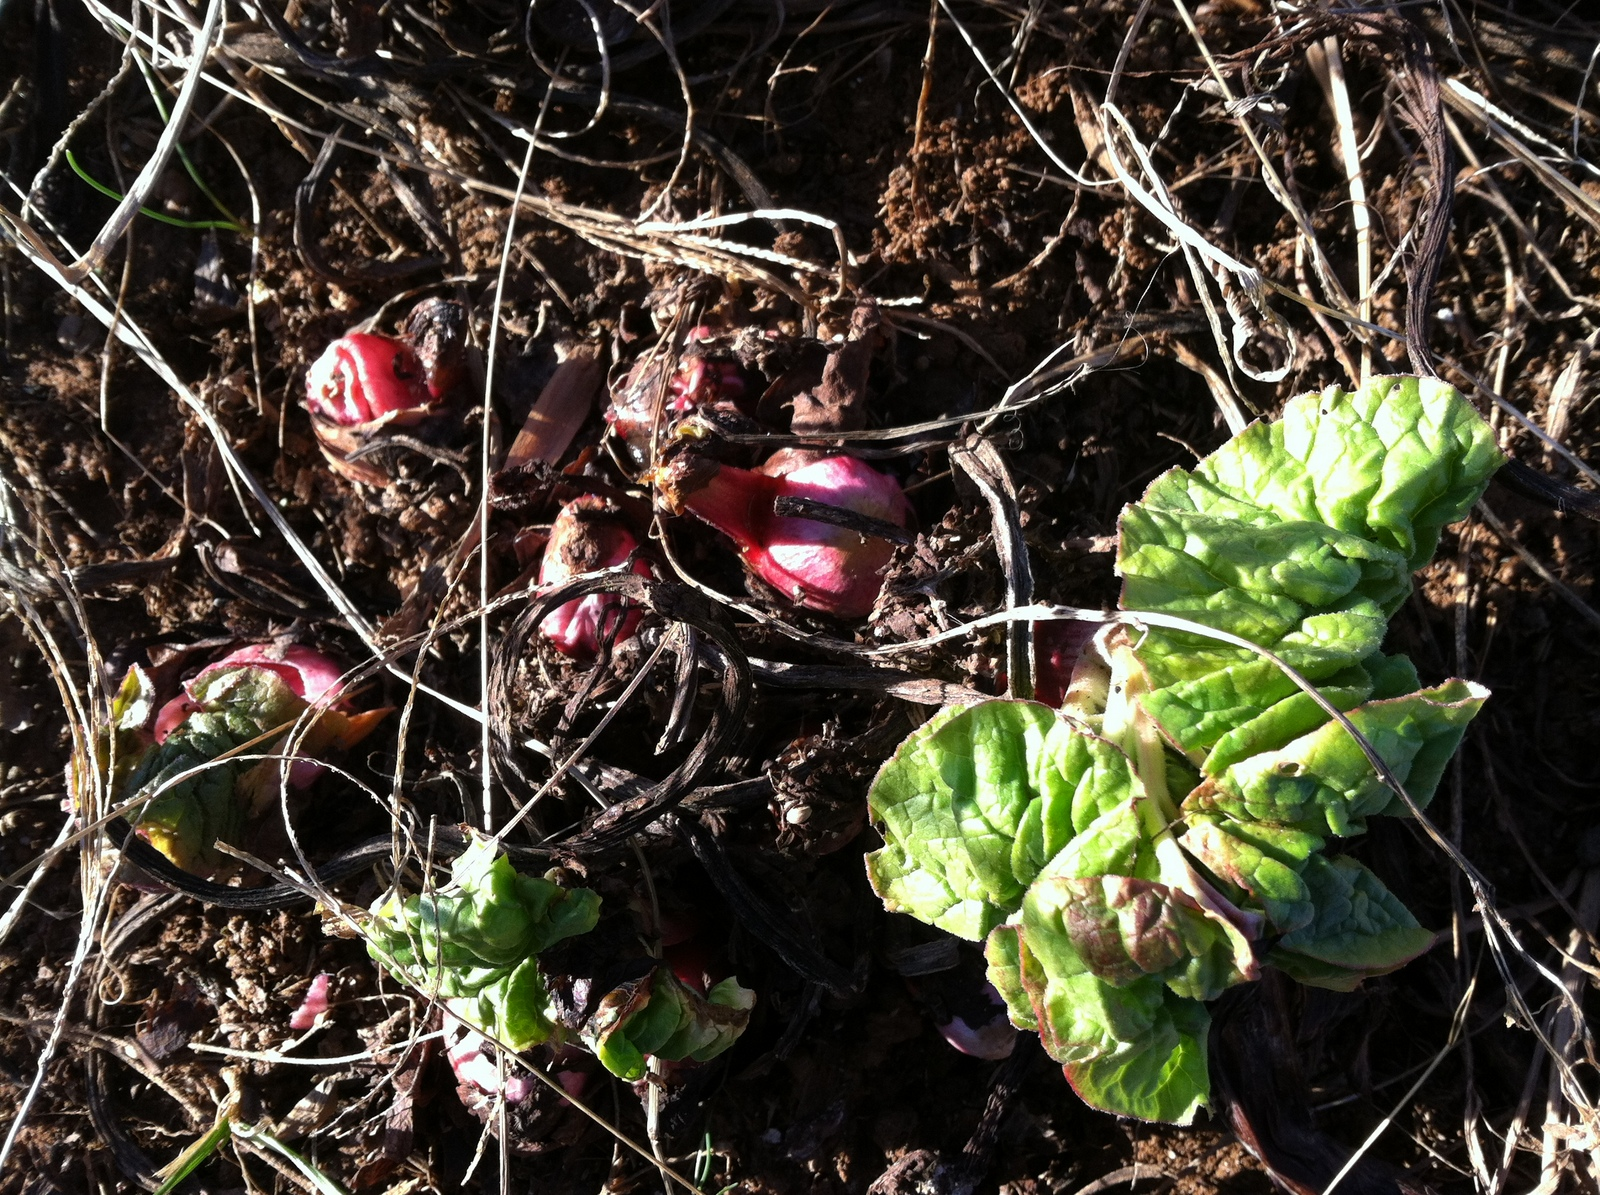 The rhubarb started to wake-up, so I got busy moving it.